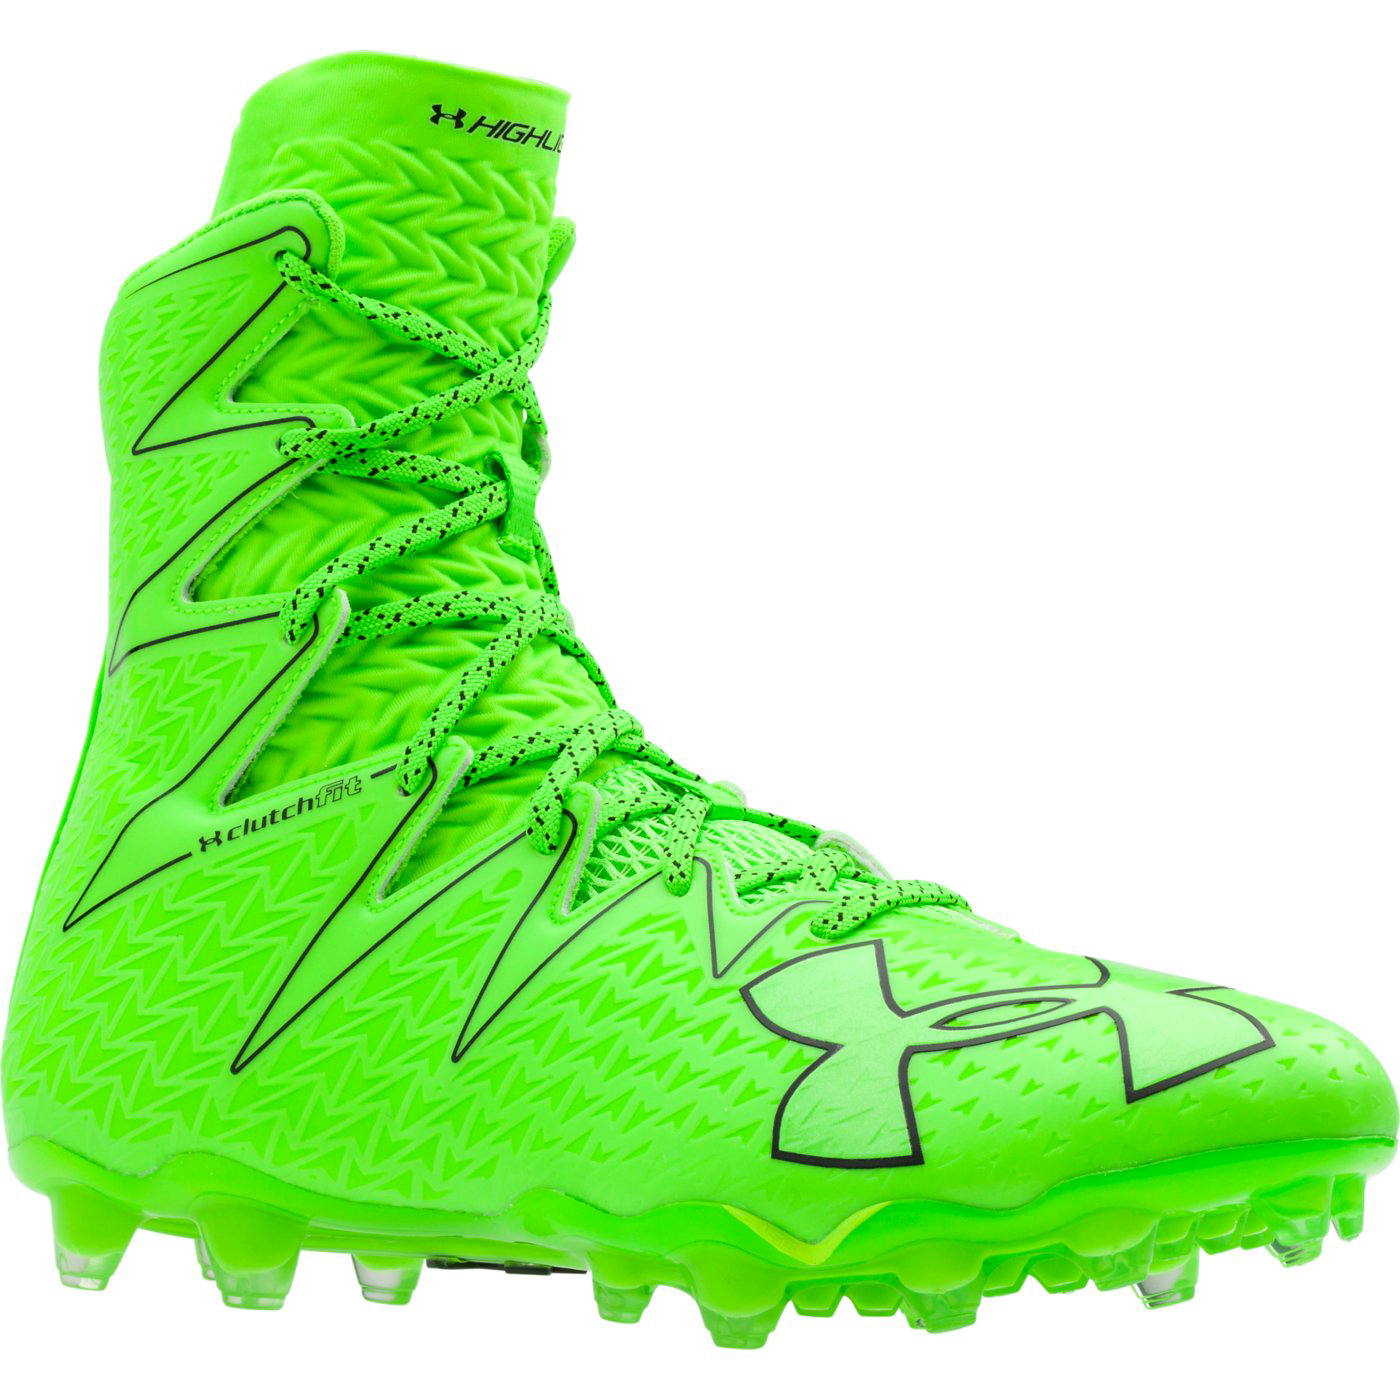 green under armour cleats cheap   OFF61% The Largest Catalog Discounts 8b2ed1d277ba